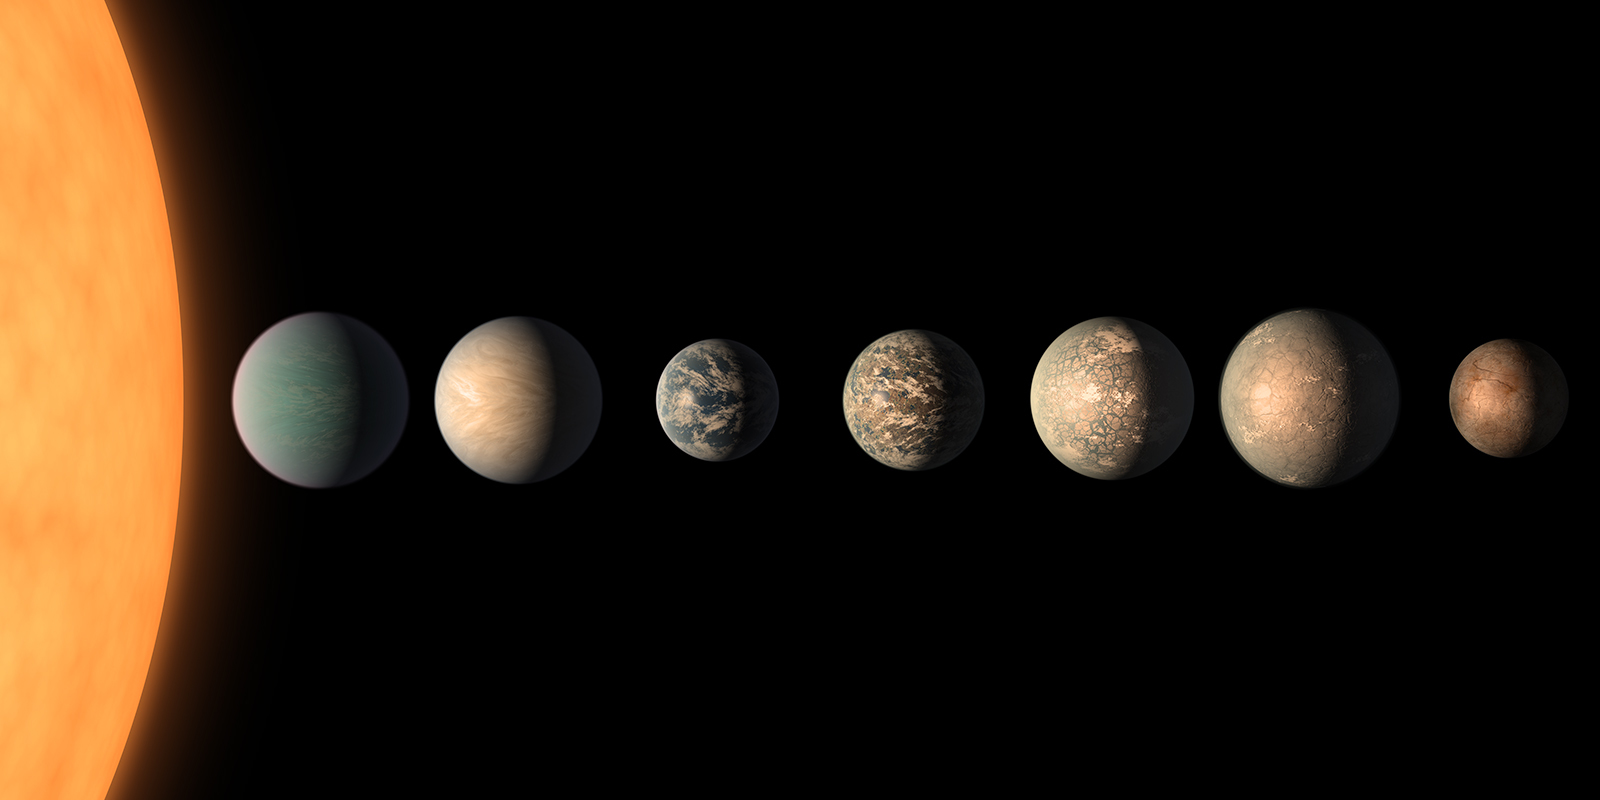 Astronomers Find High Potential for Alien Life on Earthlike TRAPPIST-1 Planets